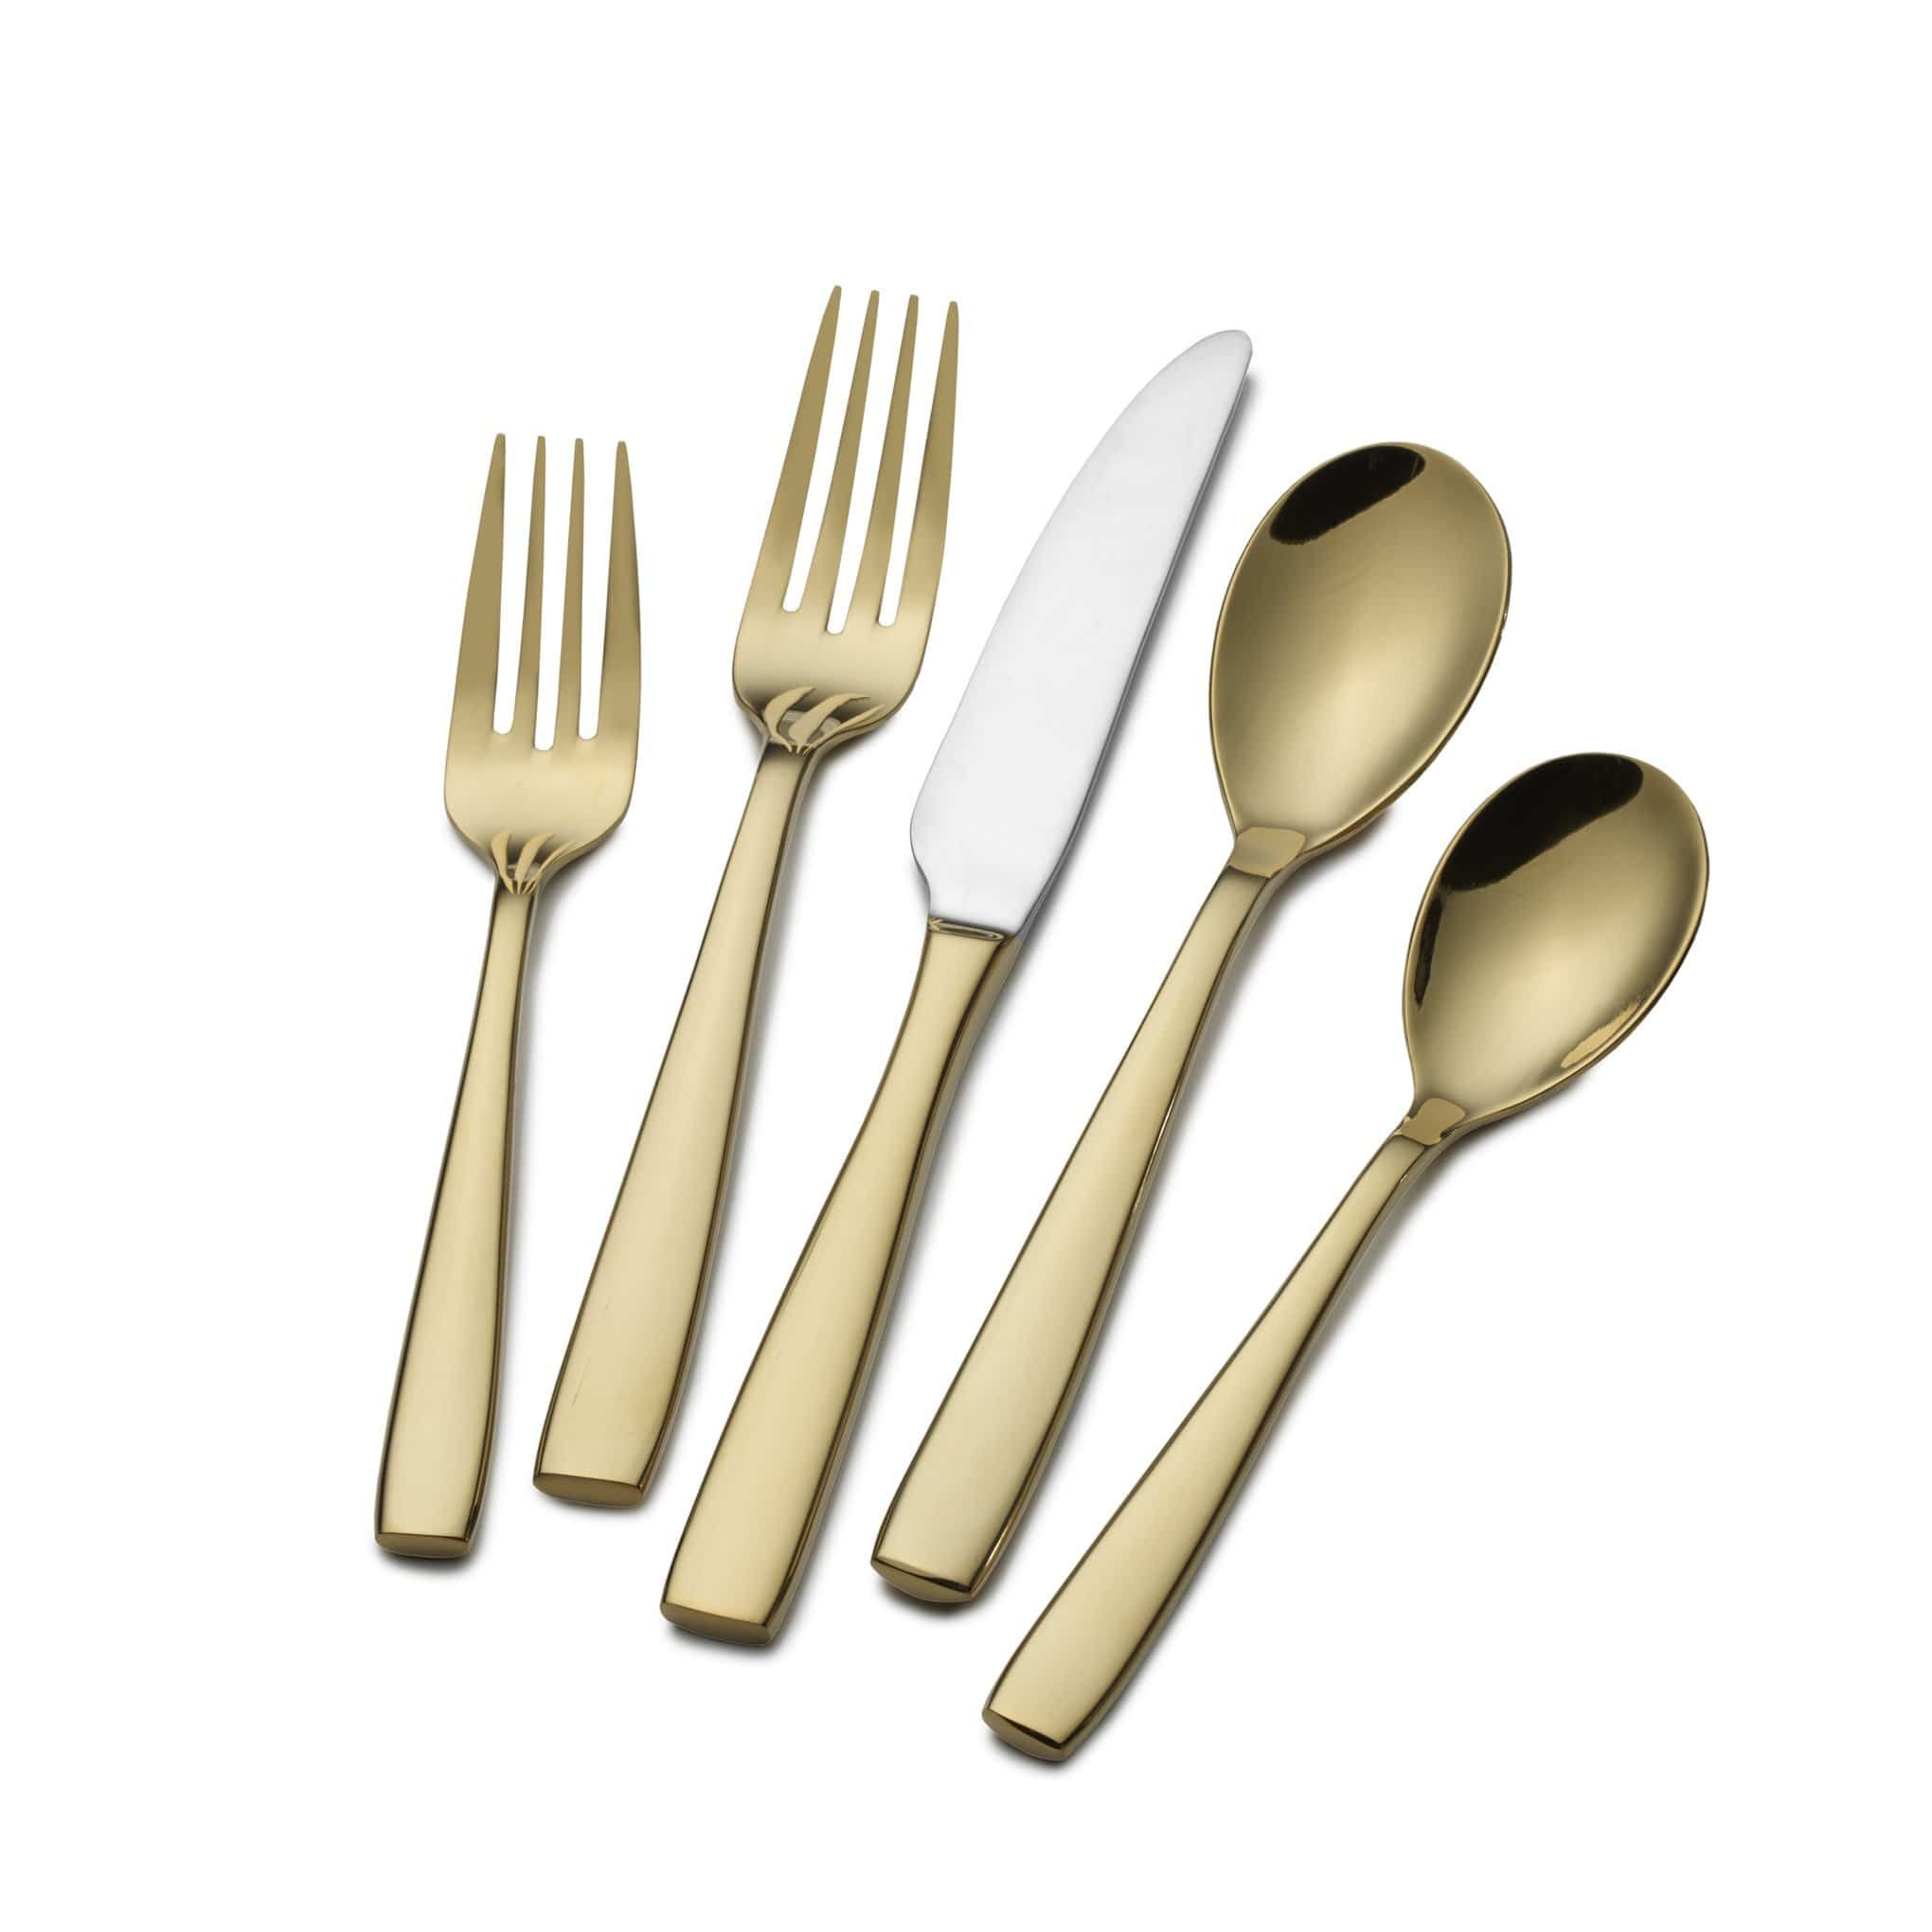 Delano Gold Plated 20 Piece Flatware Set, Service for 4